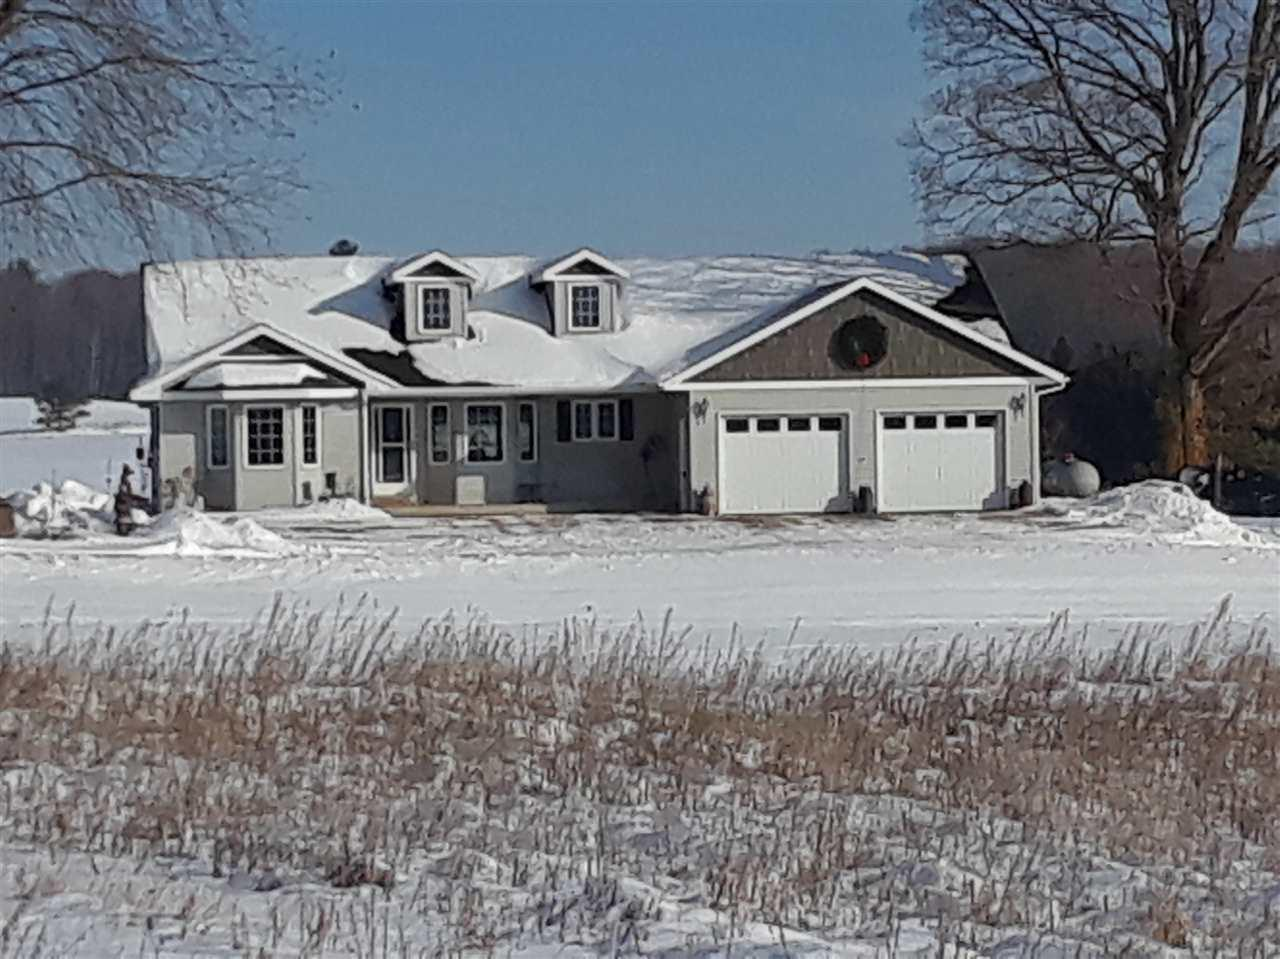 If you have been looking for 10 acres with additional sheds with a beautiful 3 bedroom quality built home you can stop your search now. Come take a look at the LR, Dining Area and Kitchen with Brazilian teak wood floors, open concept cathedral ceiling, gas fireplace and center island. Master bedroom has walk in closet and MBath has jacuzzi and double sinks. The 2 sheds for animals or implements are 40x90 and 24x50. There is a fenced area for horses, etc. Also there is a spring that never freezes for the animals.